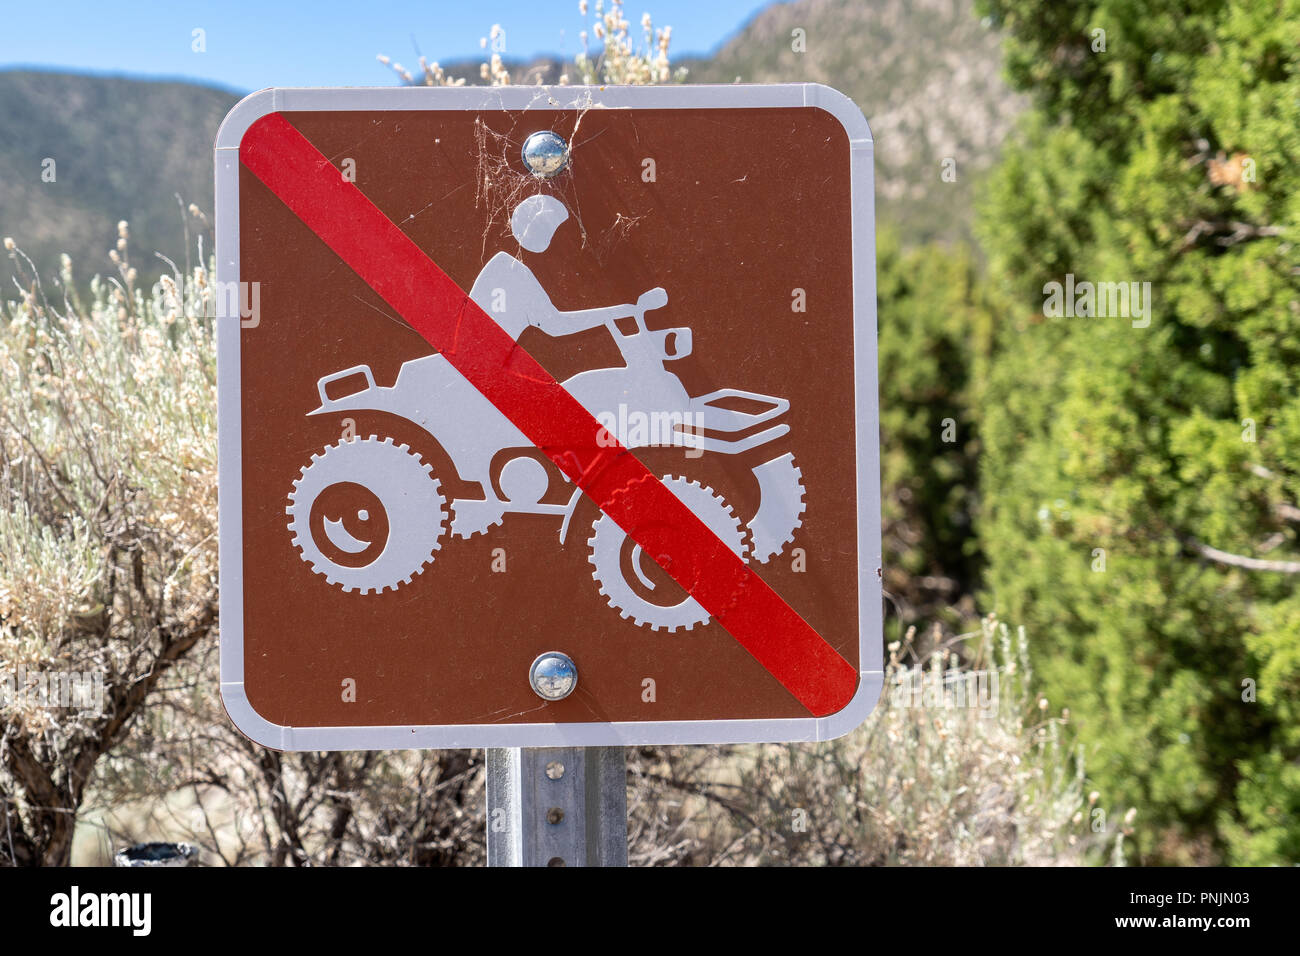 Sign for no 4x4 ATV (all terrain vehicles) or off roading sign - Stock Image